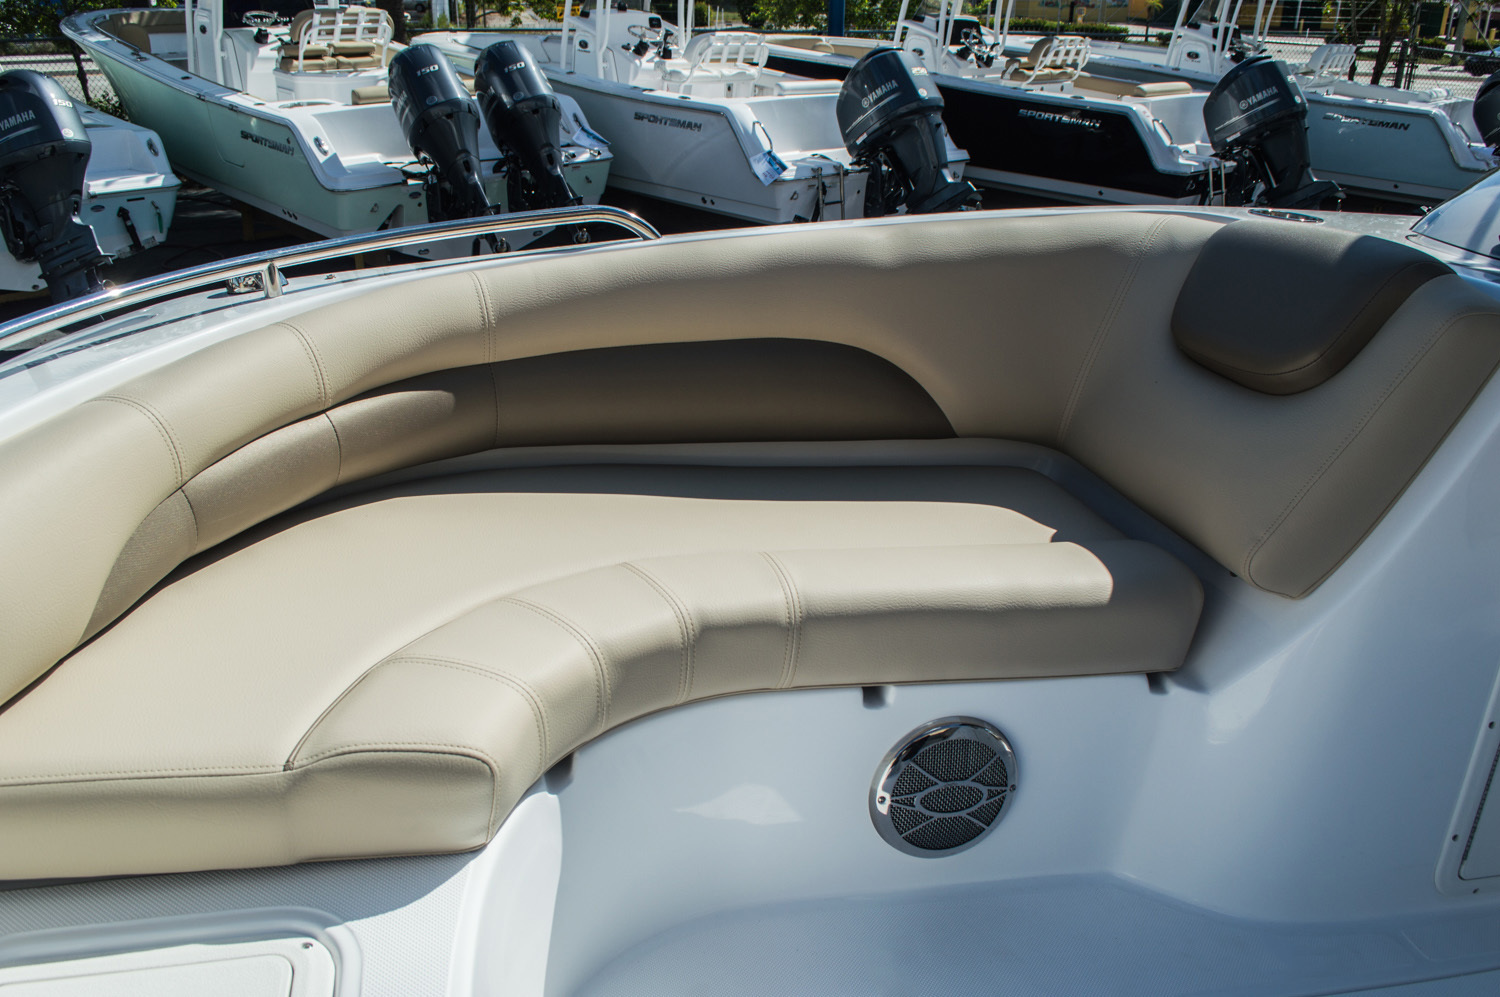 Thumbnail 25 for New 2016 Hurricane SunDeck Sport SS 188 OB boat for sale in West Palm Beach, FL